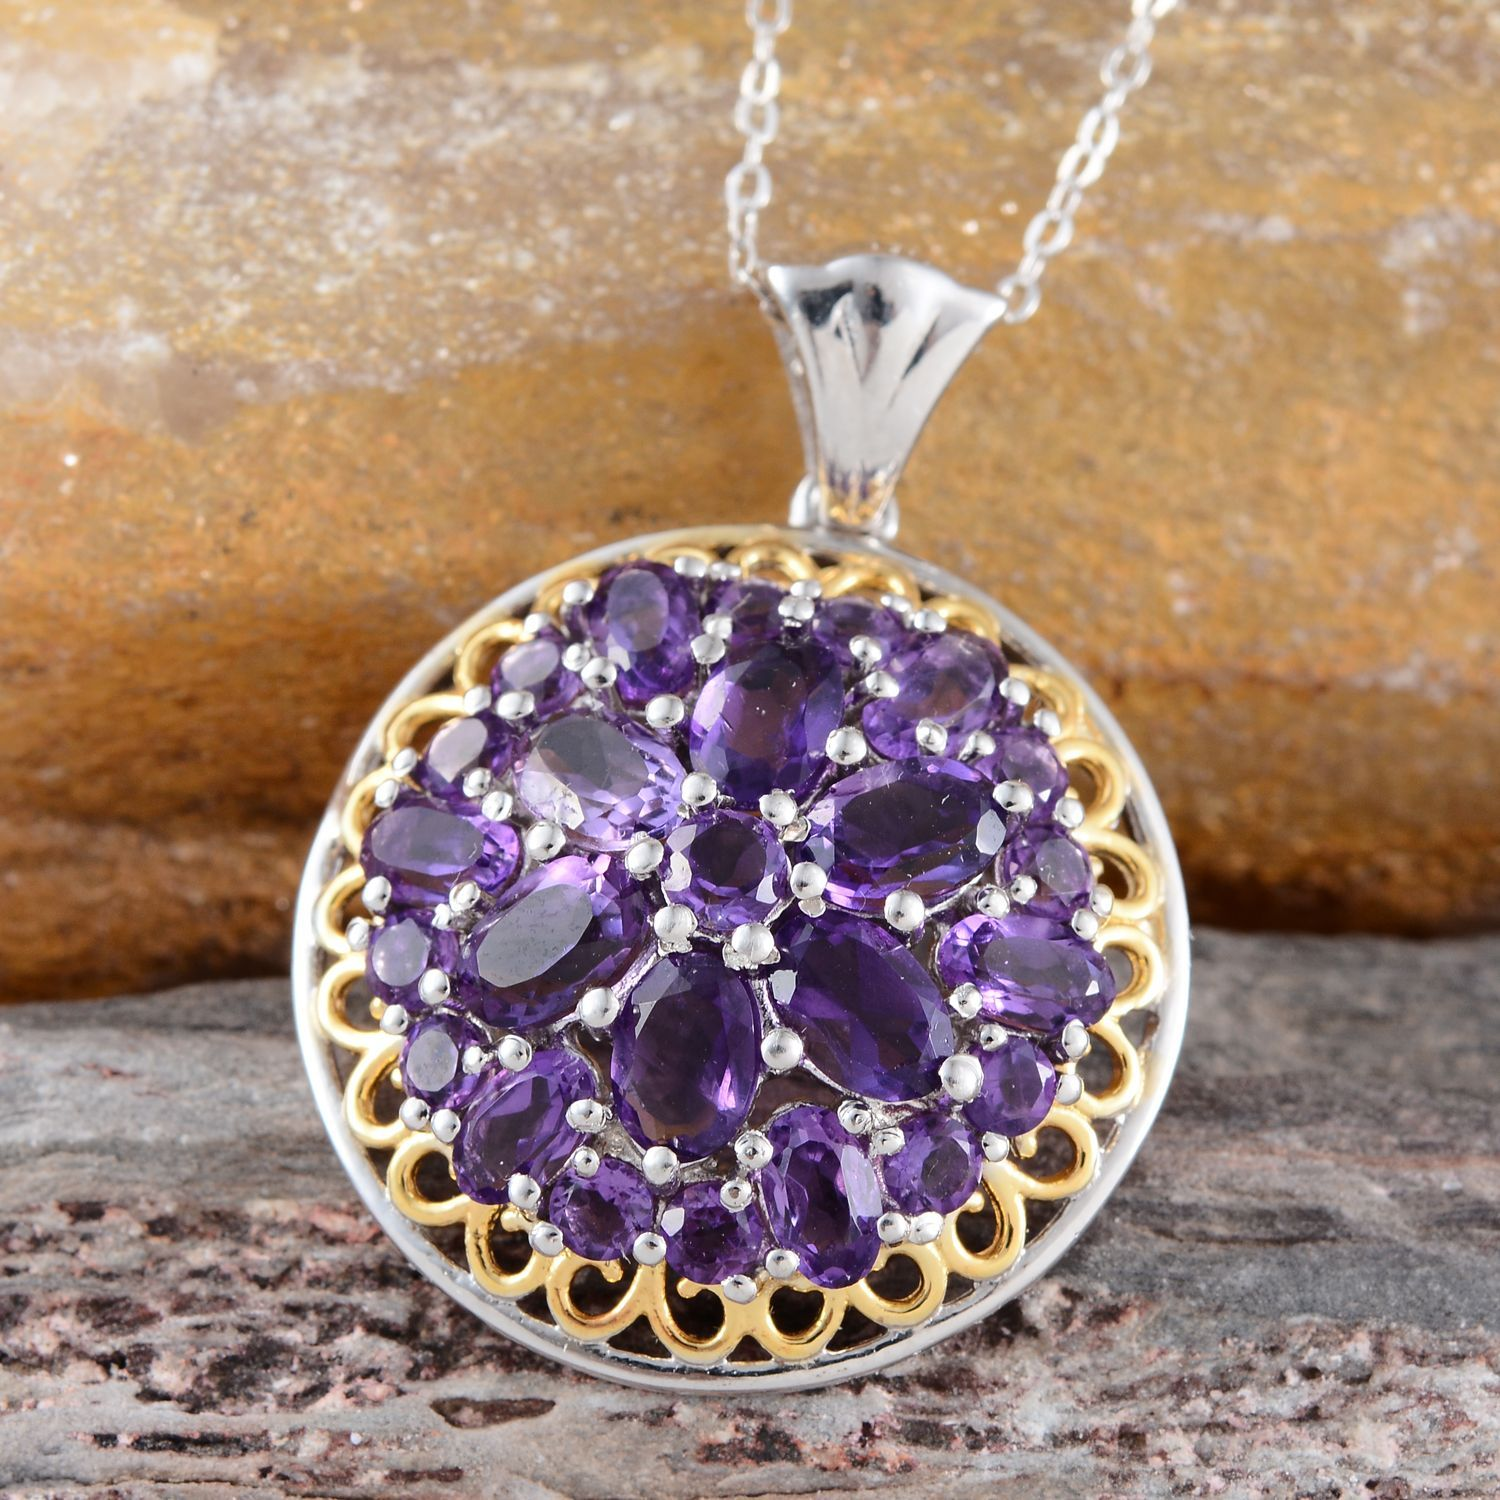 Amethyst Pendant with Chain in 14K Yellow Gold and Platinum Overlay Sterling Silver (Nickel Free)